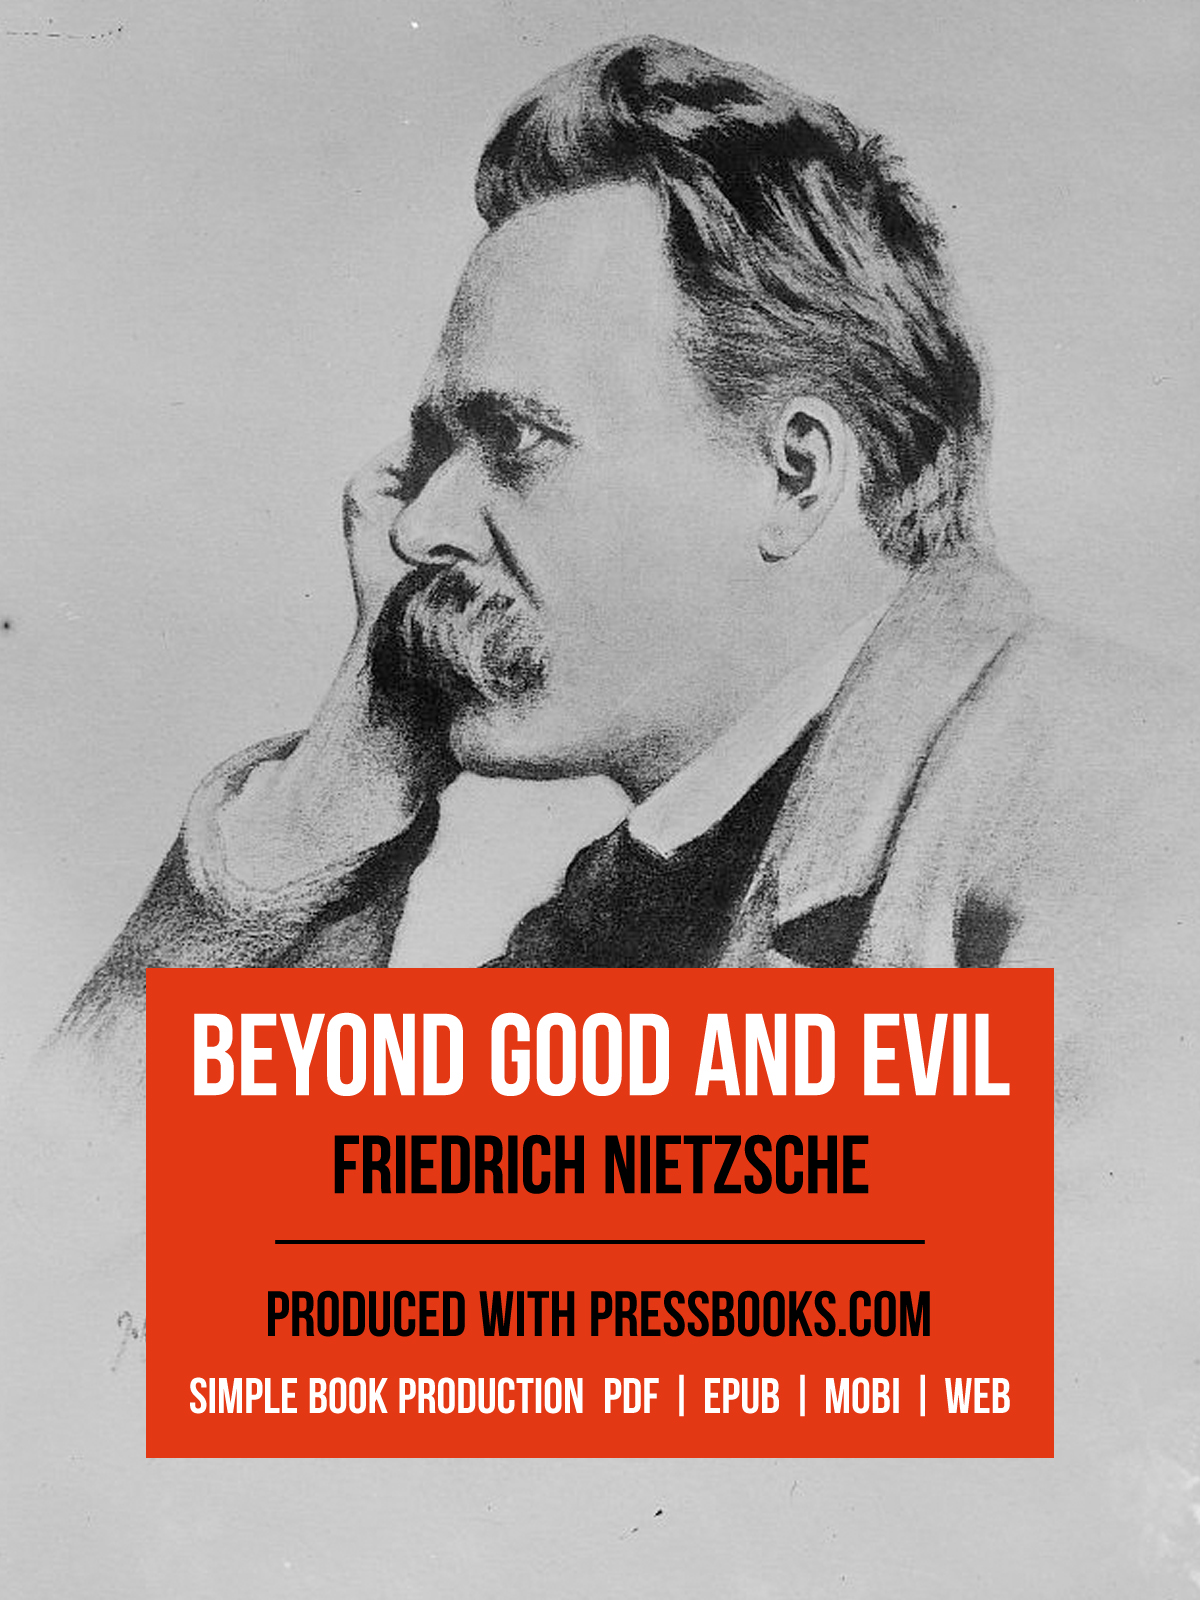 nietszche essay Roger caldwell responds to an analysis of nietzsche's morality for many, nietzsche and morality make an unlikely conjunction certainly, for all his challenging views – or perhaps because they proved all too challenging – he was until recently absent from traditional philosophy courses on.